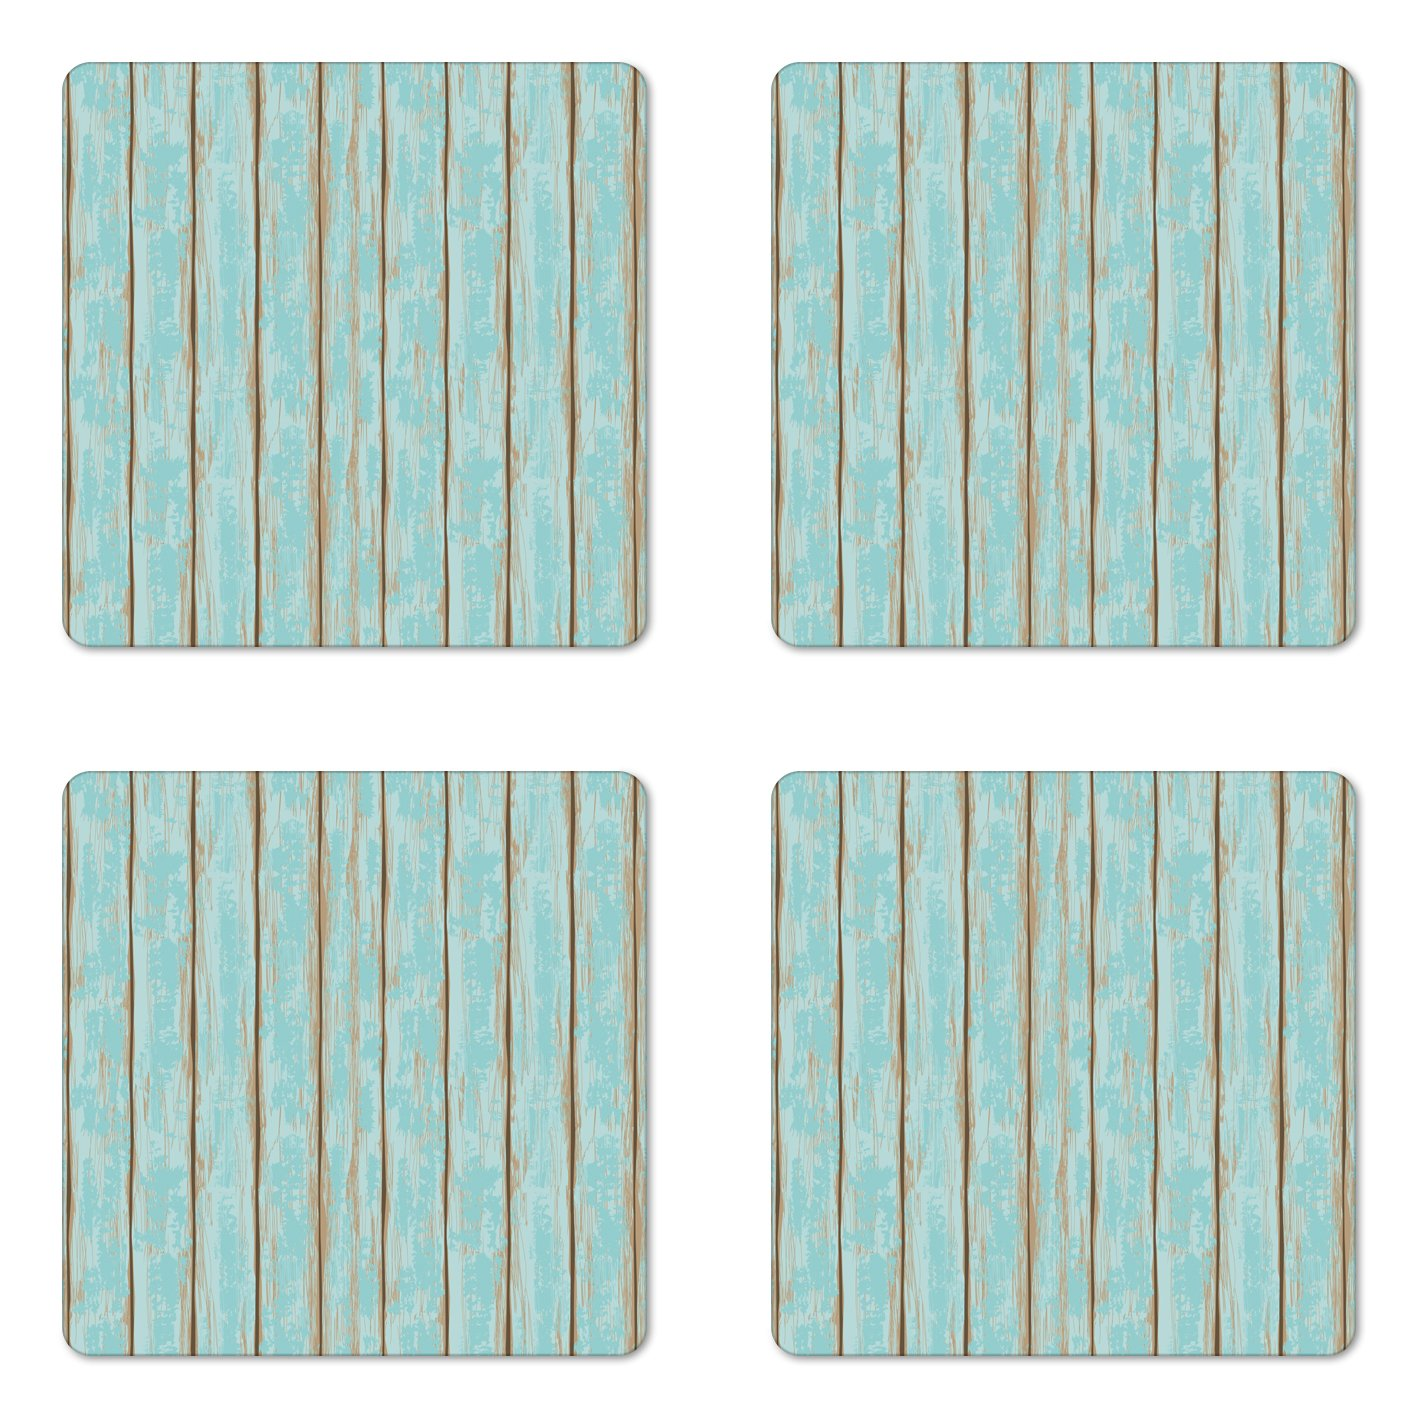 Lunarable Wood Print Coaster Set of Four by, Old Fashioned Weathered Rustic Planks Summer Cottage Beach Coastal Theme, Square Hardboard Gloss Coasters for Drinks, Pale Blue Tan